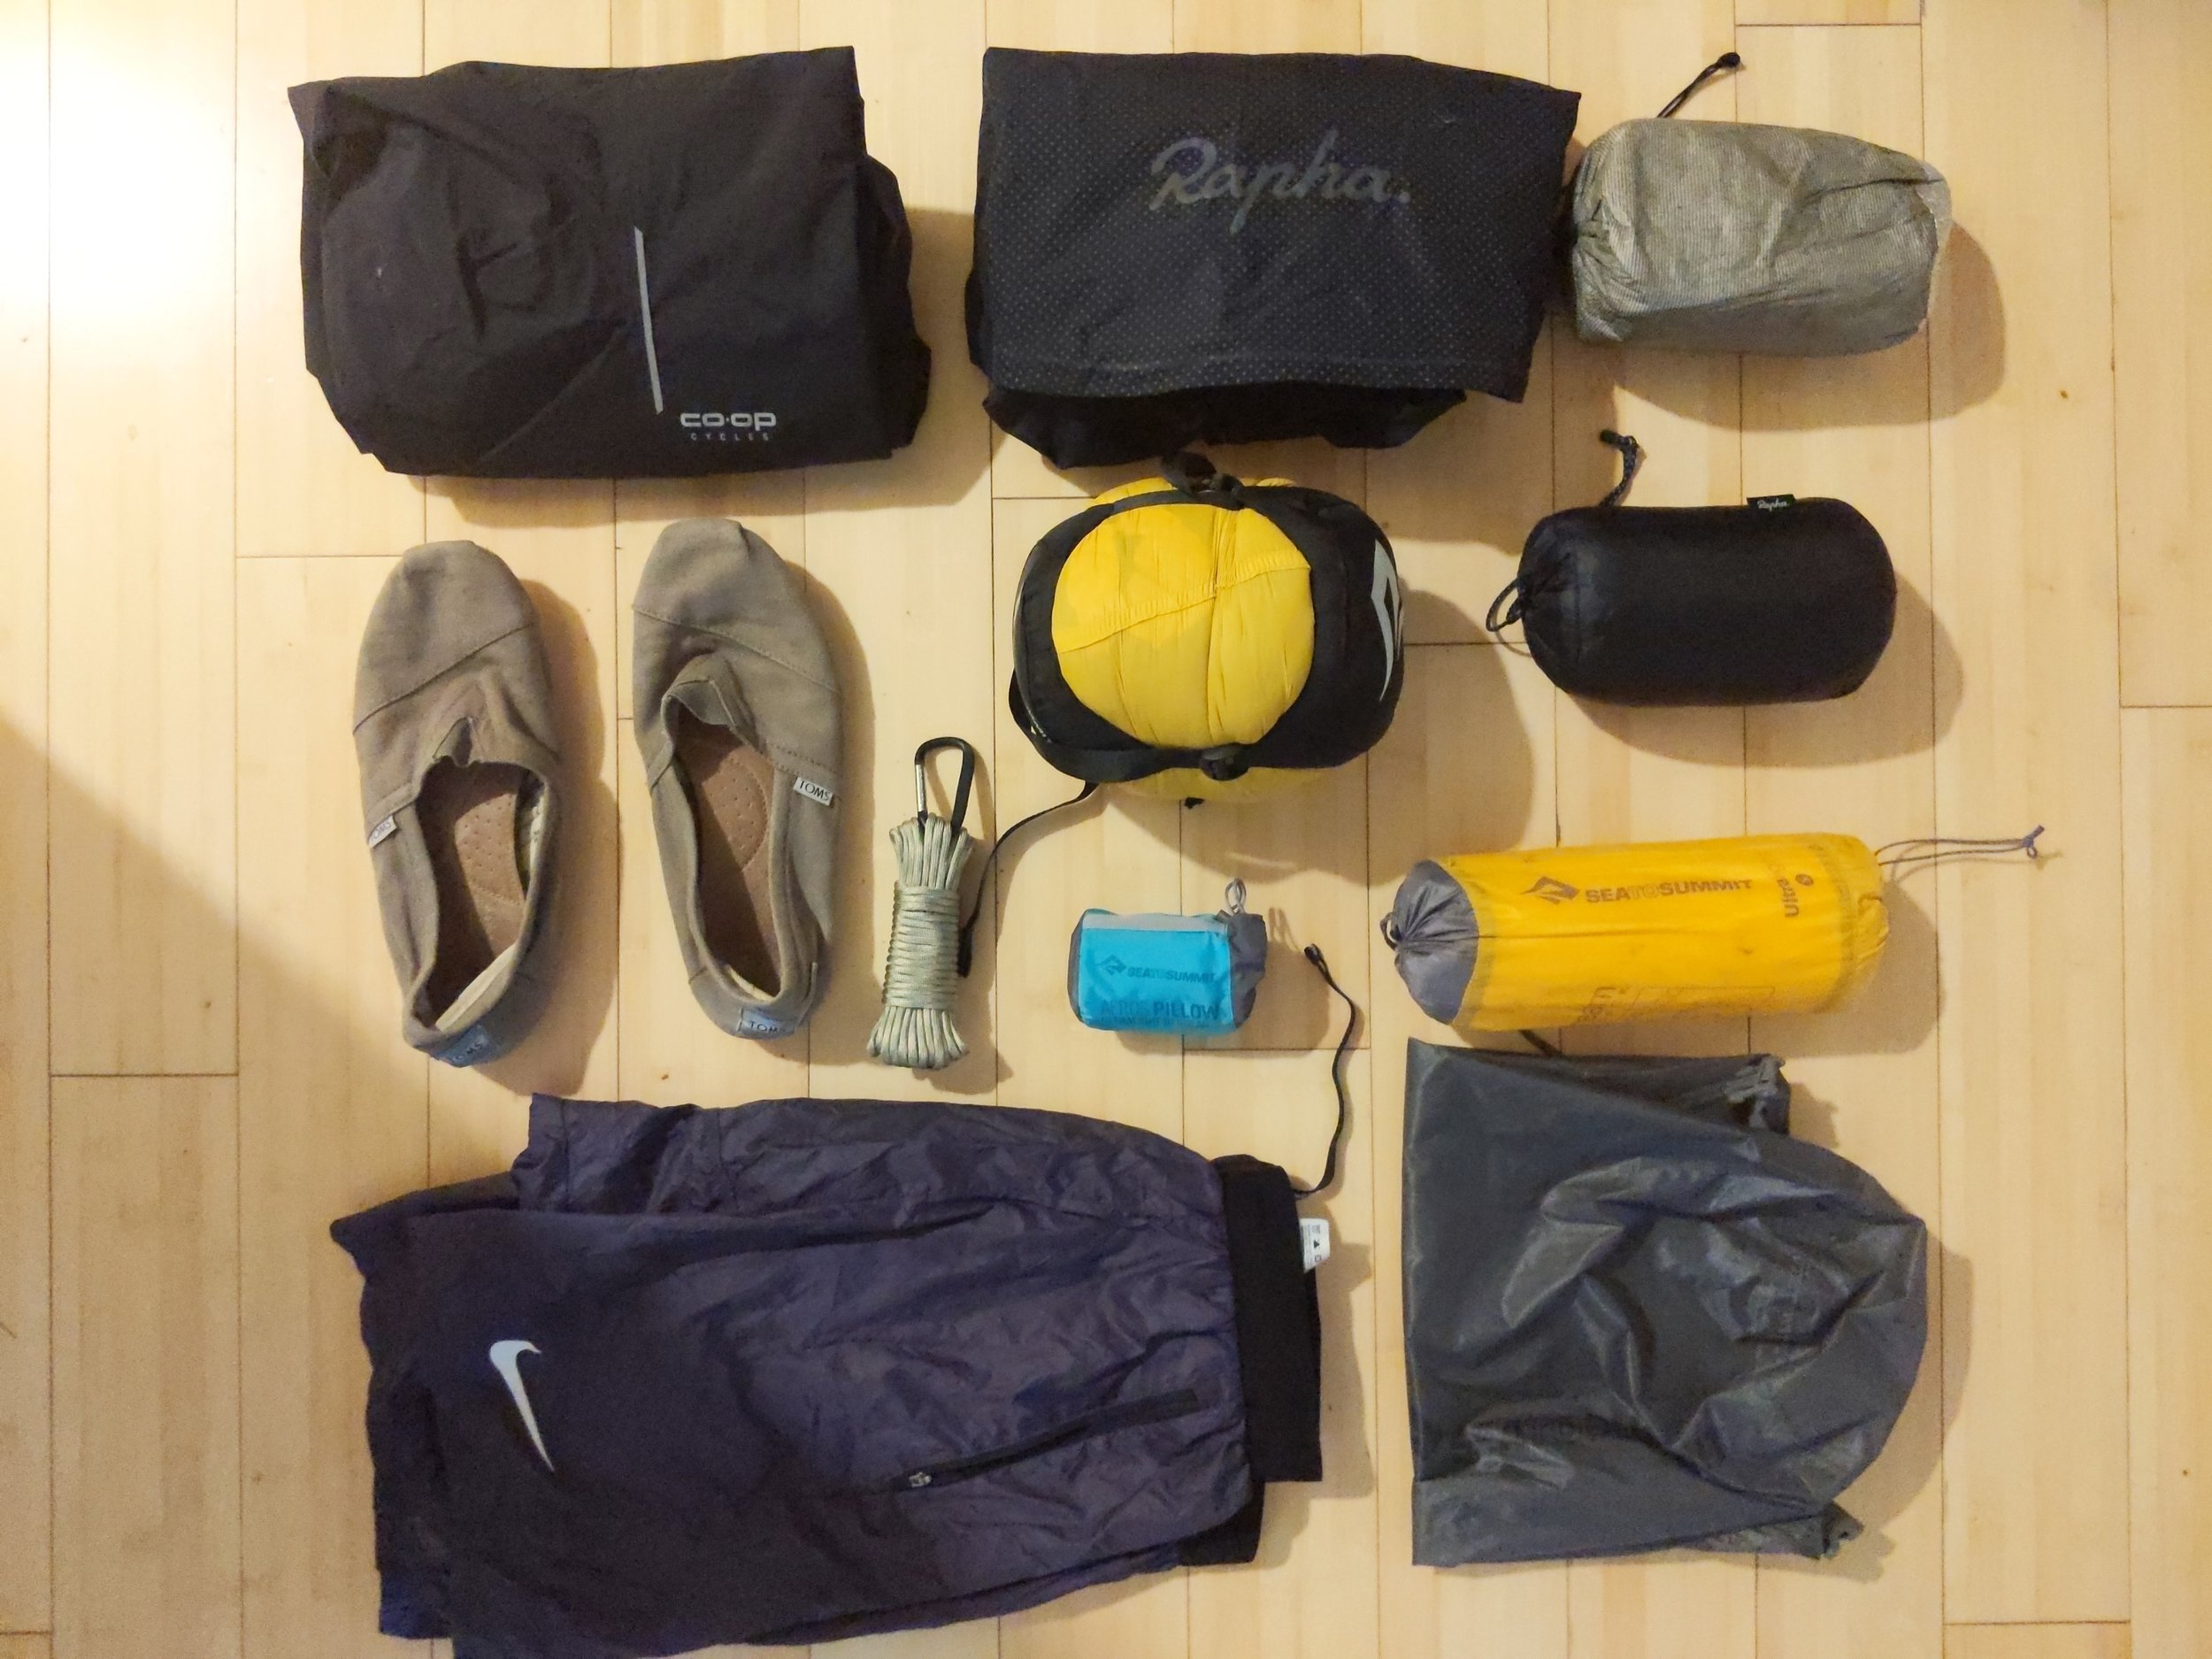 JPaks SeatPak - Sea to Summit Spark SP II Sleeping BagSea to Summit Ultralight Air Sleeping MatSea to Summit Aeros Ultralight PillowSOL Escape BivyRapha Explore Down JacketRapha Commuter JacketCo-op Cycles Rain PantsGear Aid Paracord for tying up foodHeadband light for camp (not pictured)